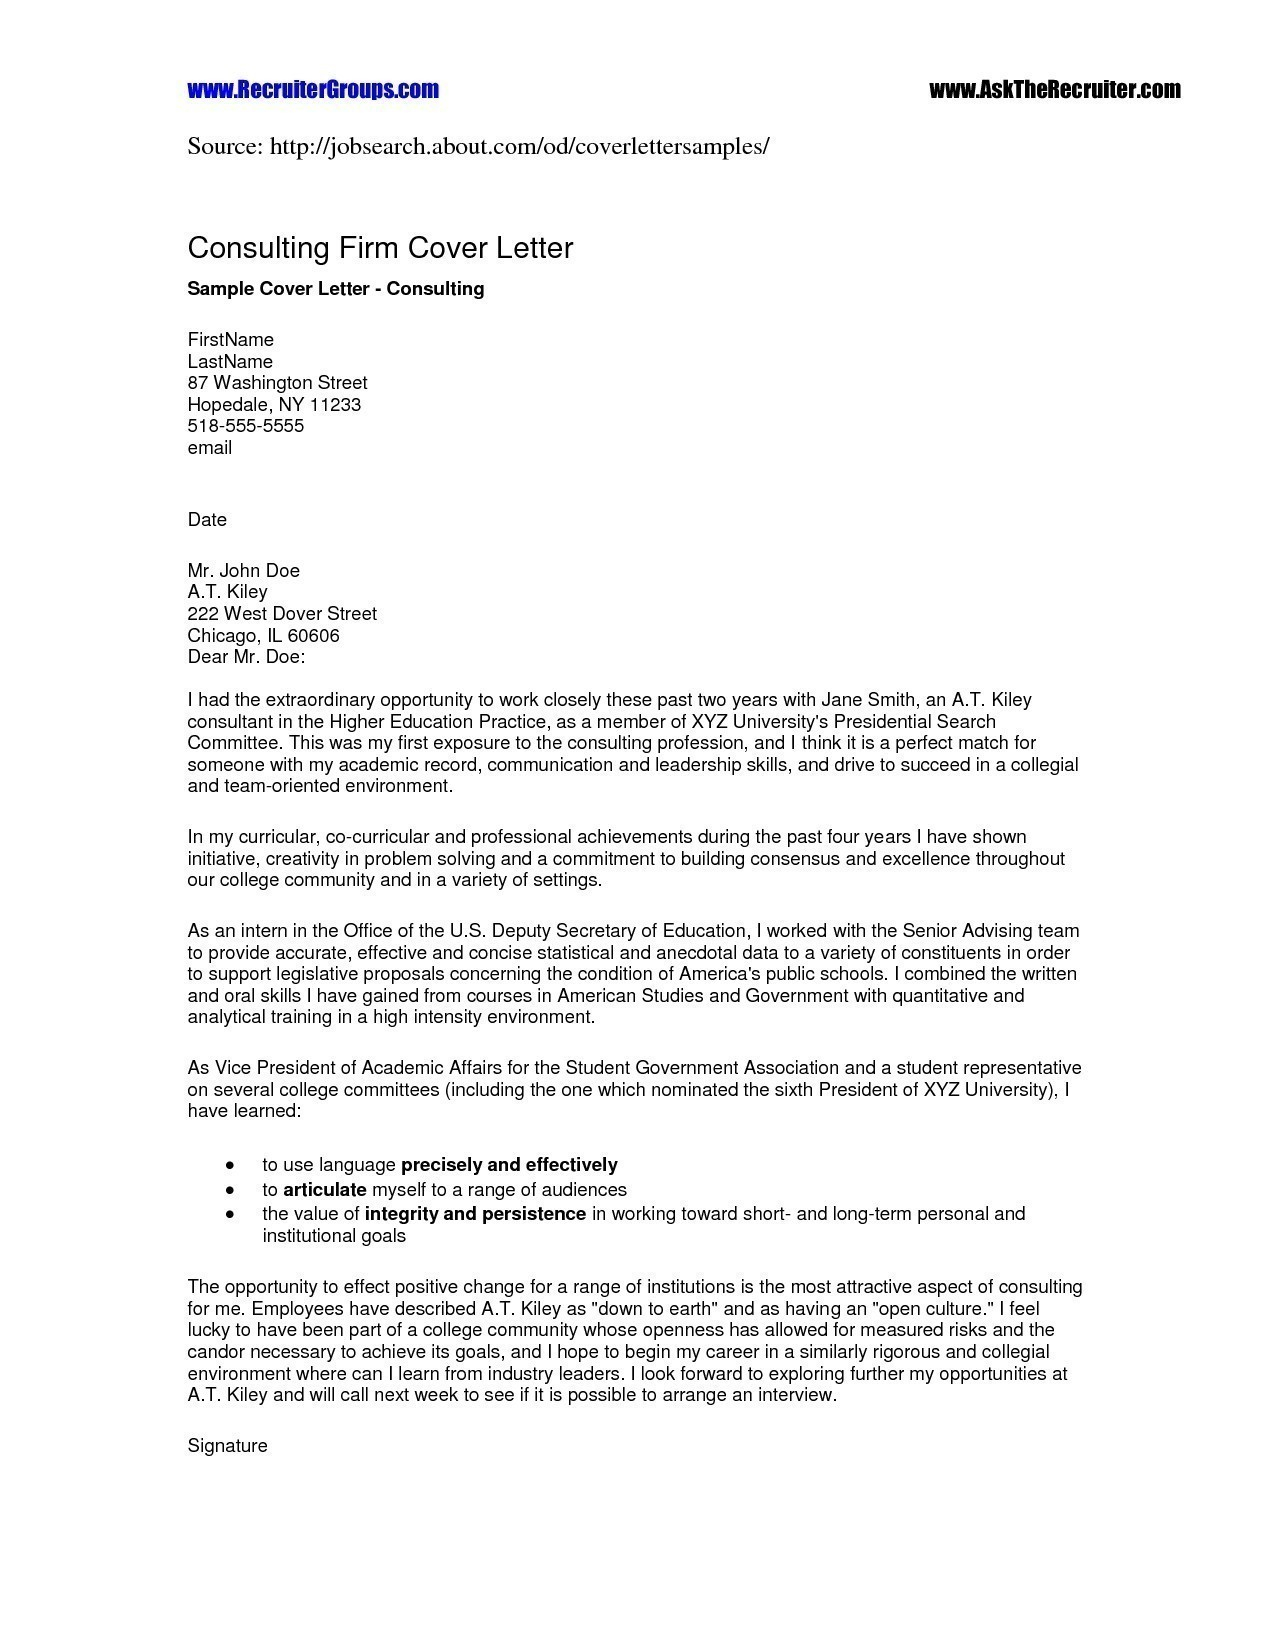 Letter for Job Offer Template - How to Write Job Fer Letter Fresh Job Fer Letter Sample Best Job